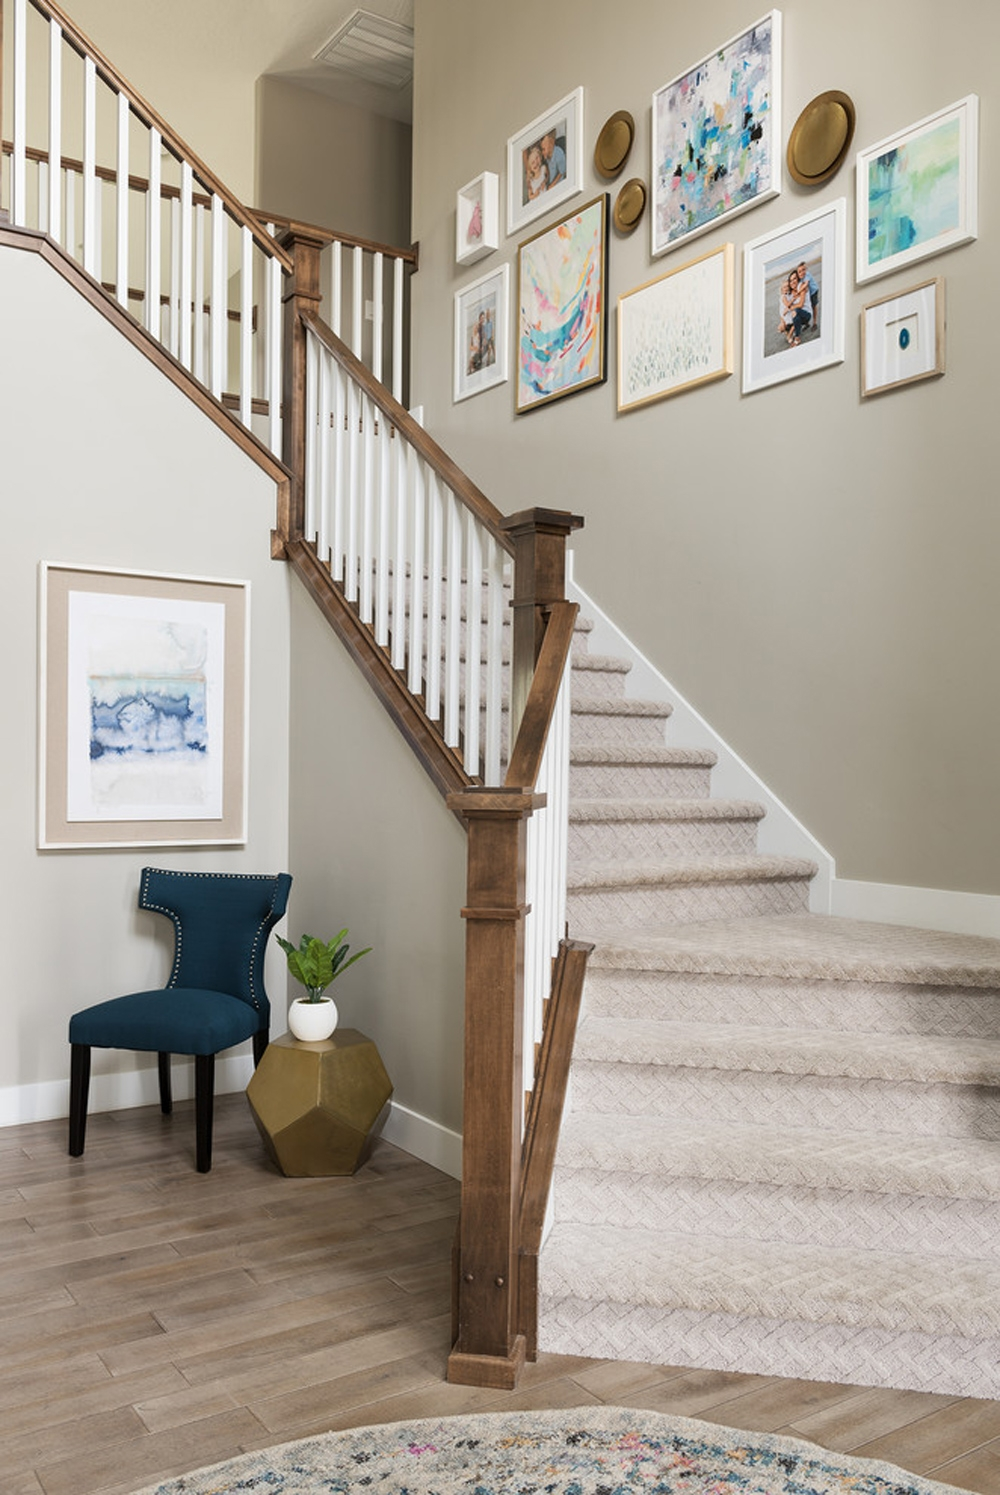 The Carpet For Stairs And How To Pick The Best One Out There | Temporary Carpet For Stairs | Flooring | Protection | Stair Runner | Film | Magic Carpet